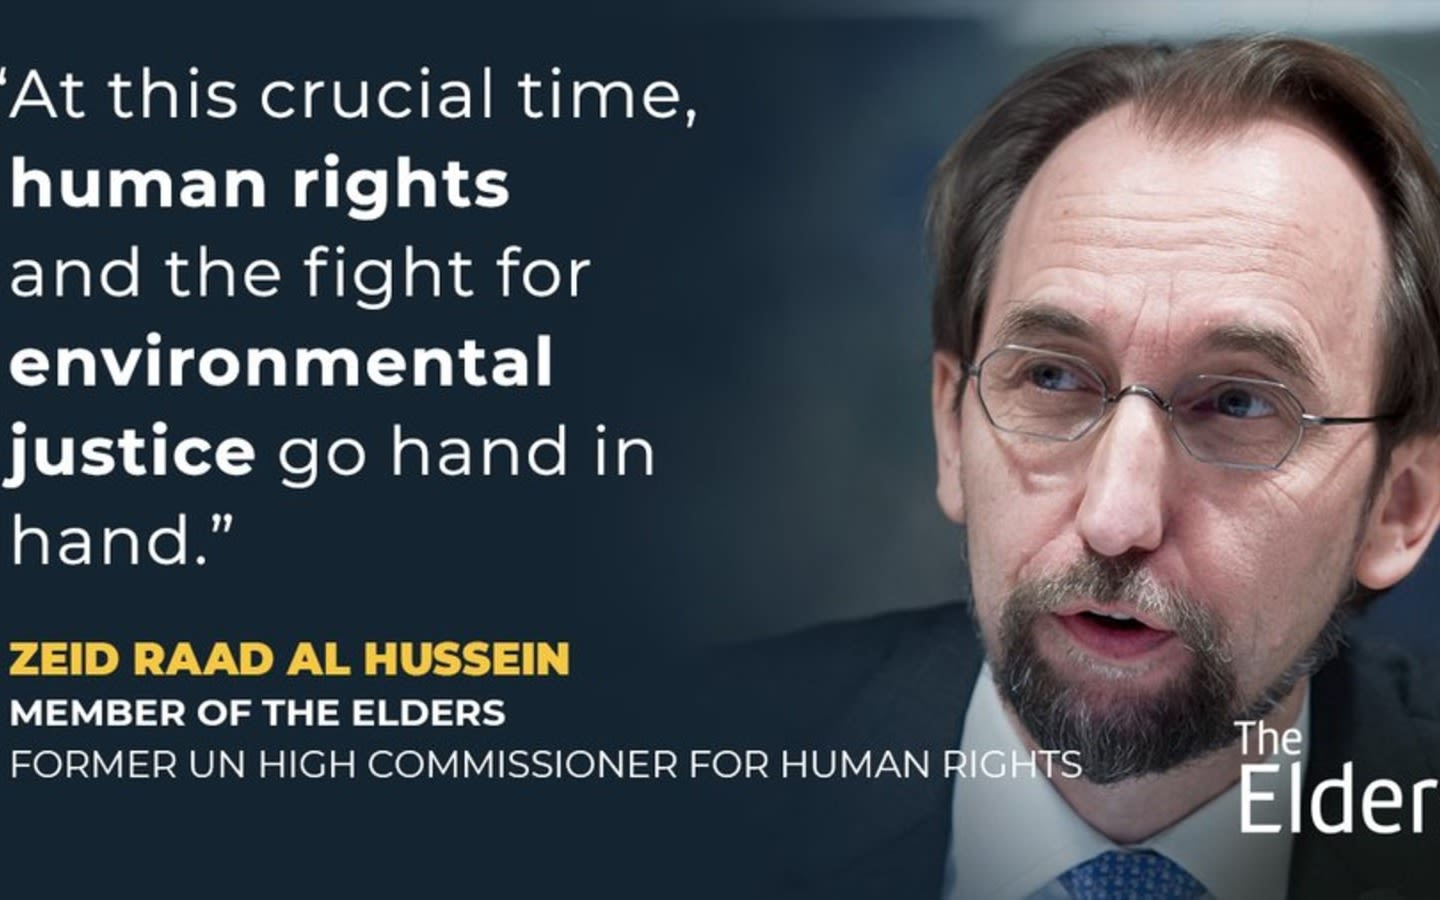 picture of zeid raad al hussain  with a quote on the left hand side and the elders on the bottom right